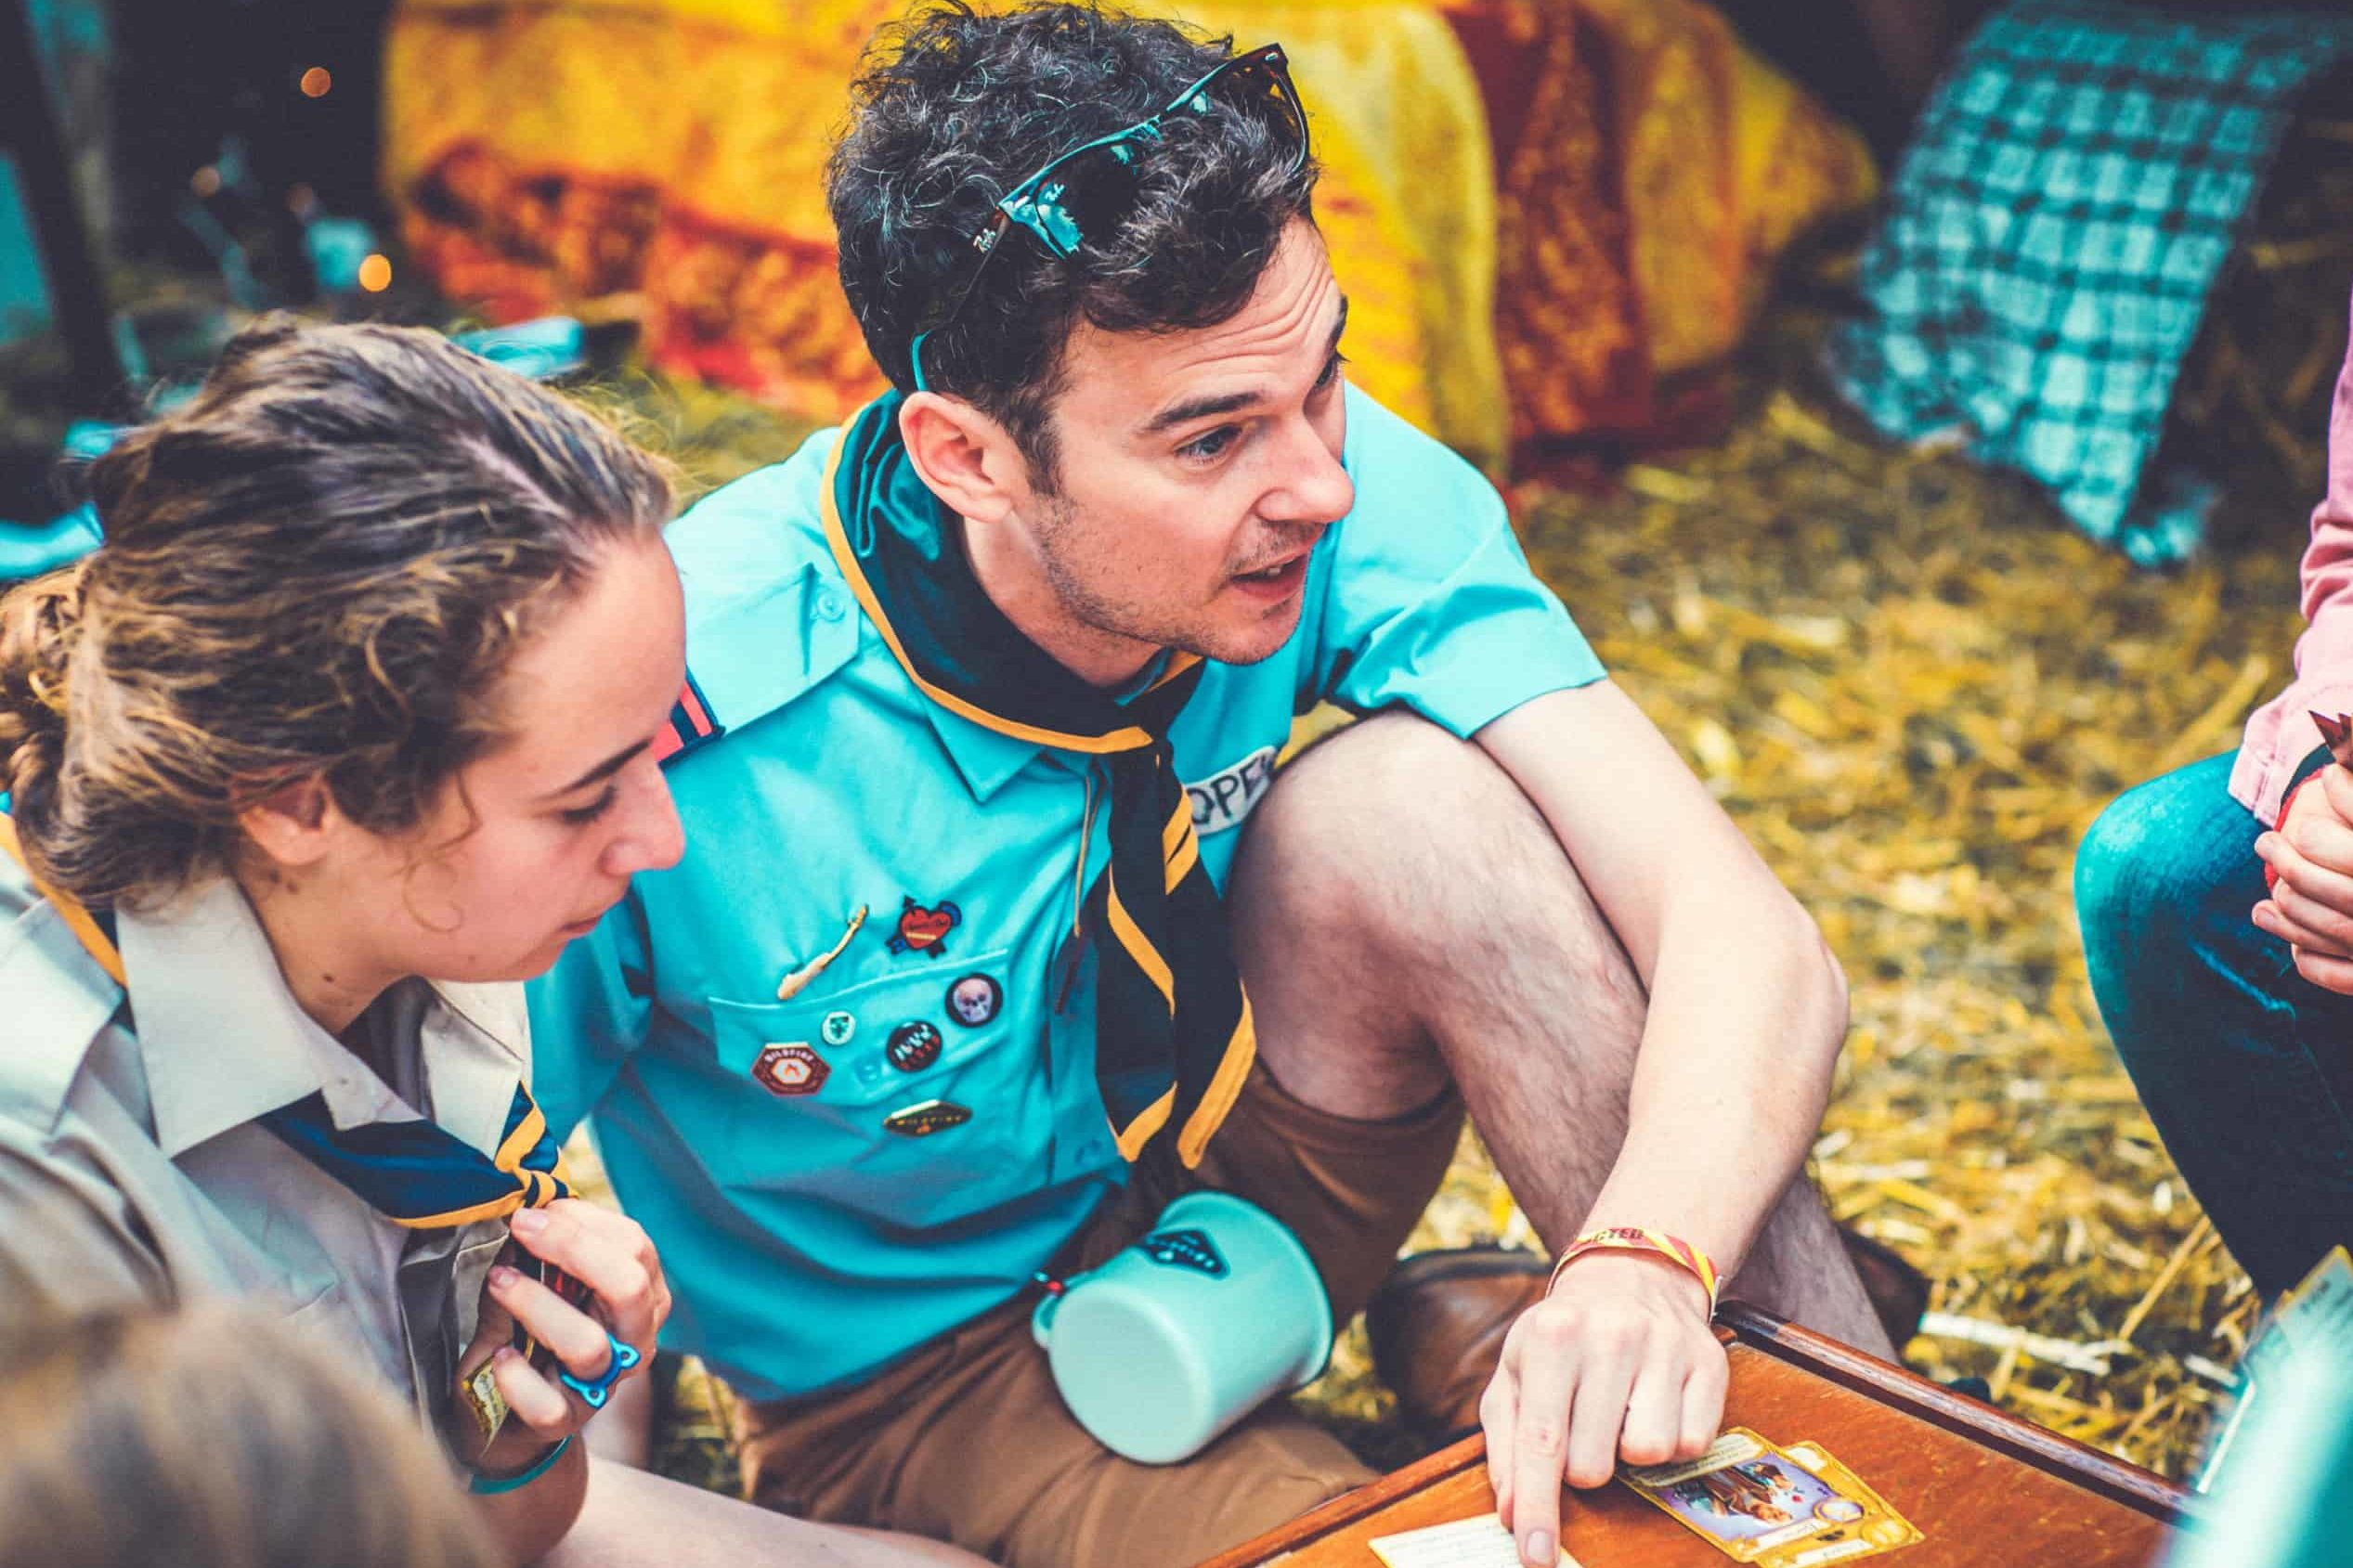 A guy in uniform with scout badges on sat playing a card game at Camp Wildfire. A summer weekend break in a forest near London and Kent. An outdoor woodland retreat featuring adventure activities, live music, DJs, parties and camping. Half summer adventure activity camp, half music festival, for adults only.